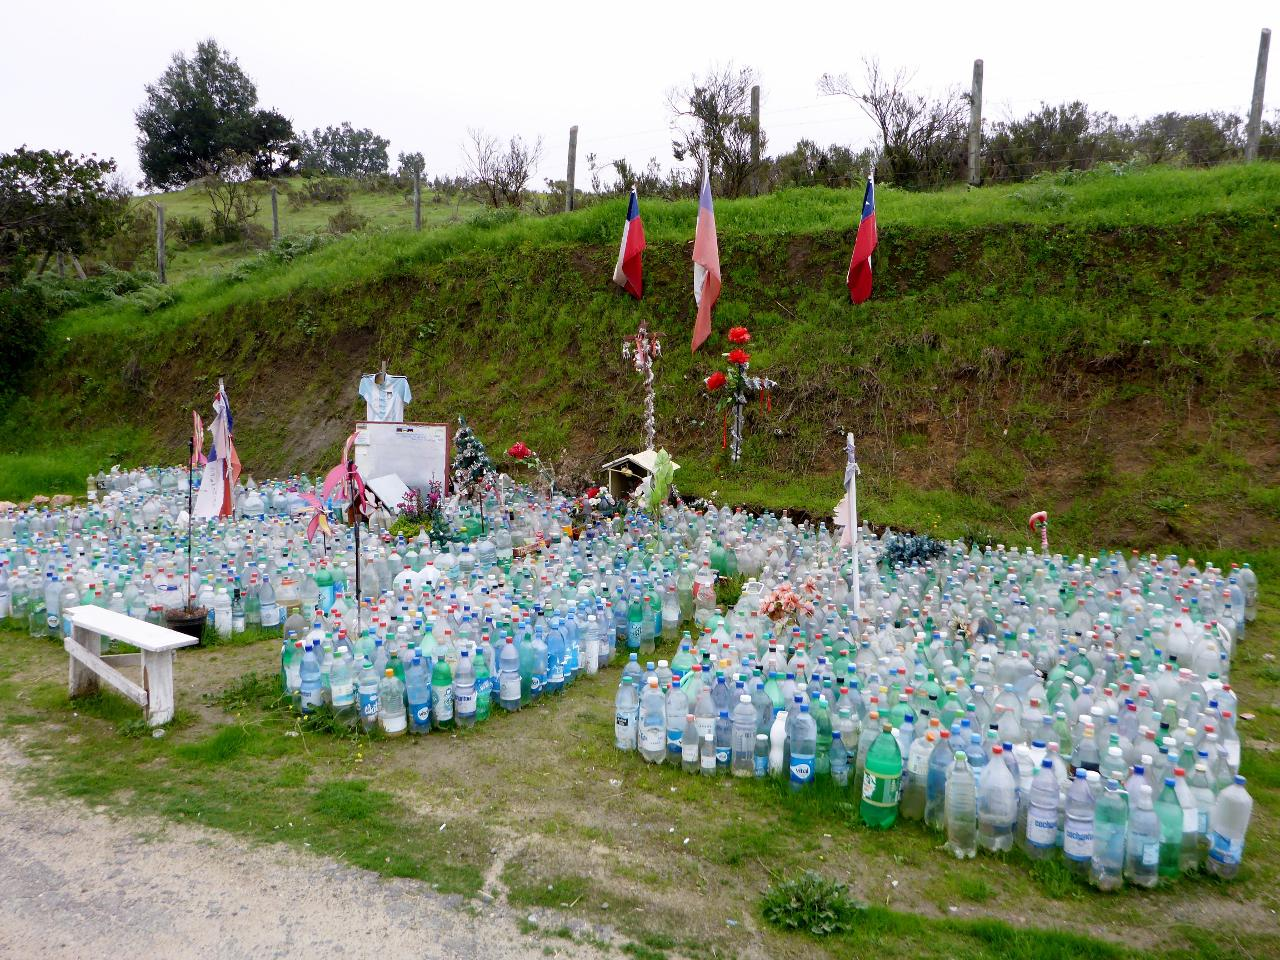 I don't understand the water bottles at this roadside memorial.